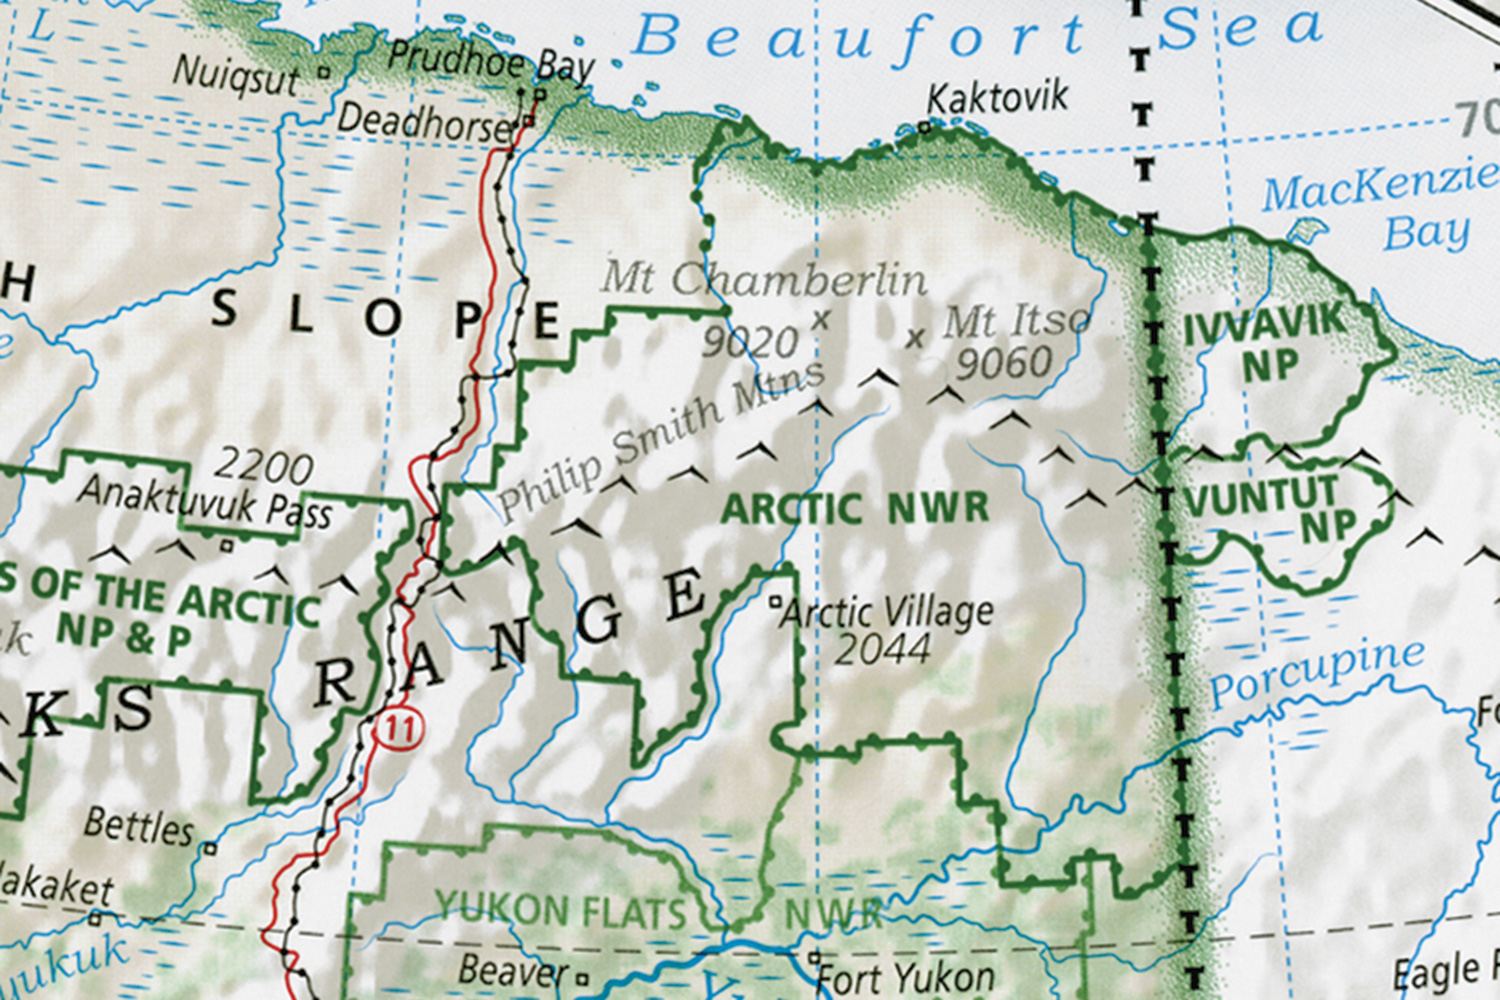 The renegade cartographer You are here High Country News